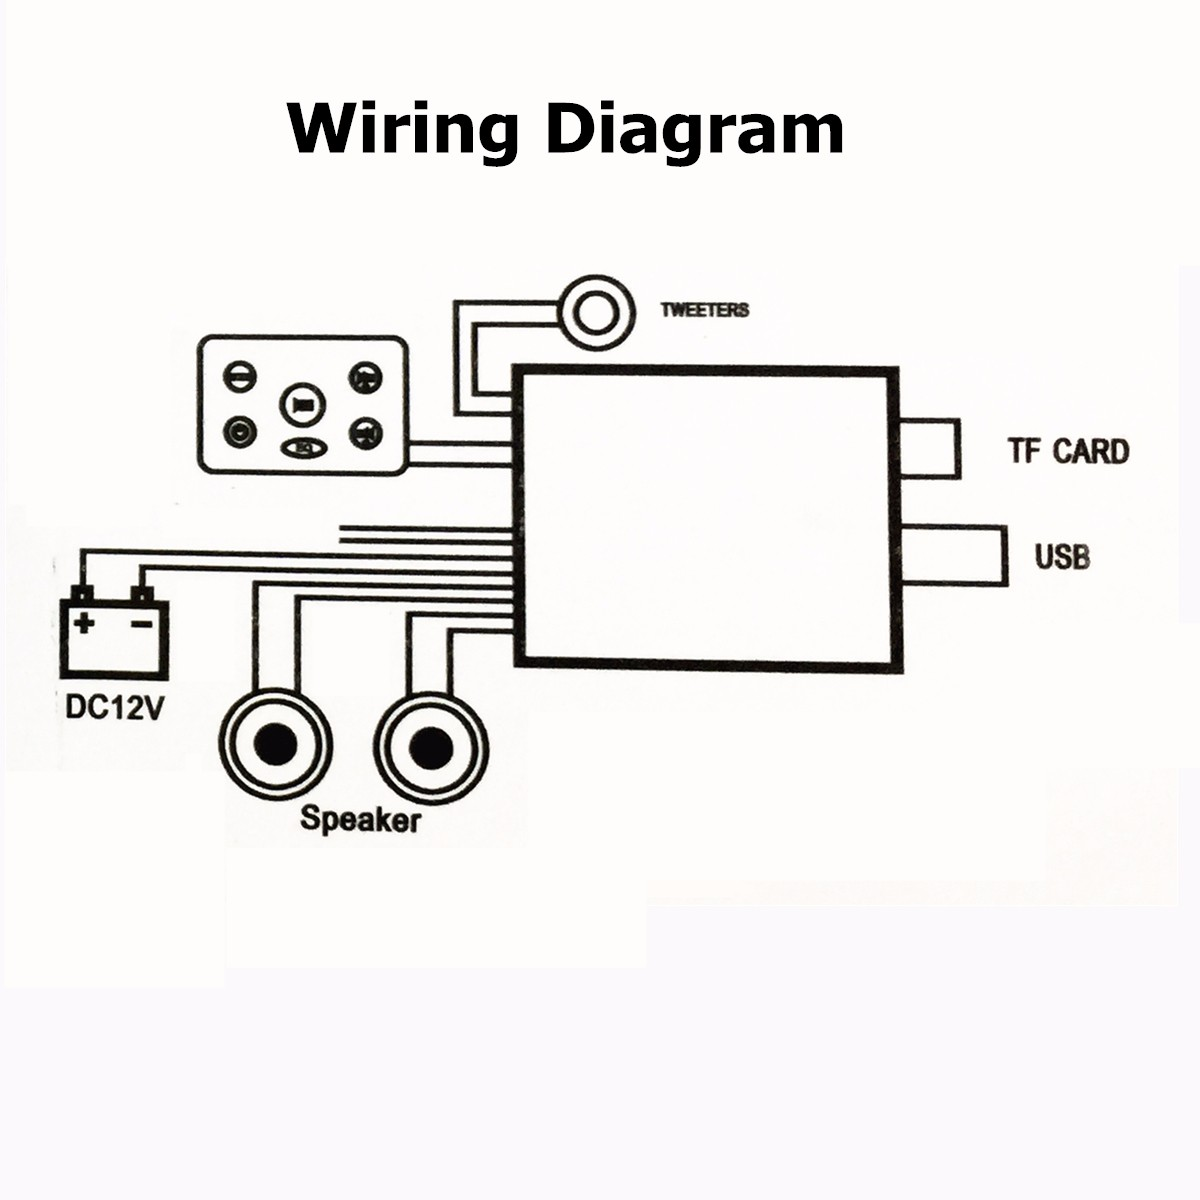 hight resolution of motorcycle radio wiring diagram wiring diagram expert motorcycle audio wiring wiring diagram centre motorcycle radio wiring